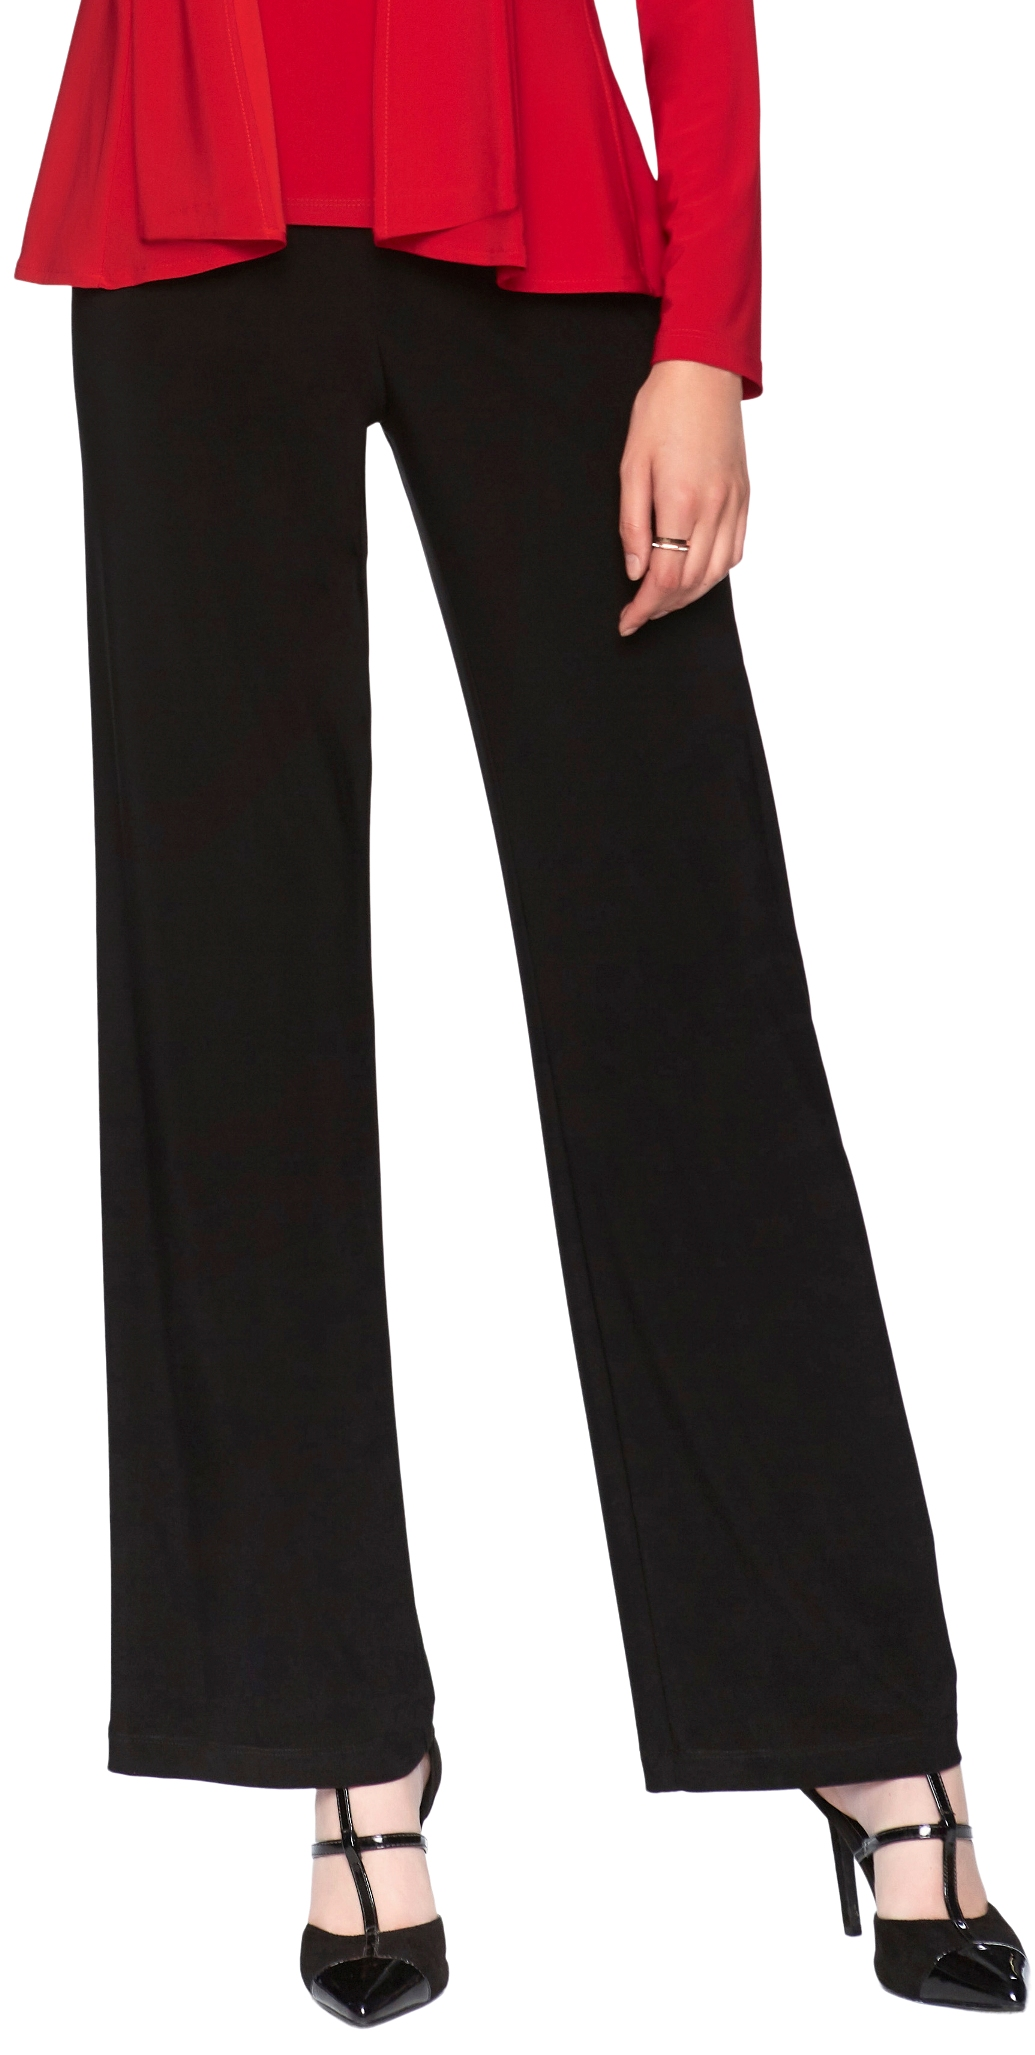 Frank Lyman Womens Pull On Straight Leg Pant Style 006, 3 Colors Available